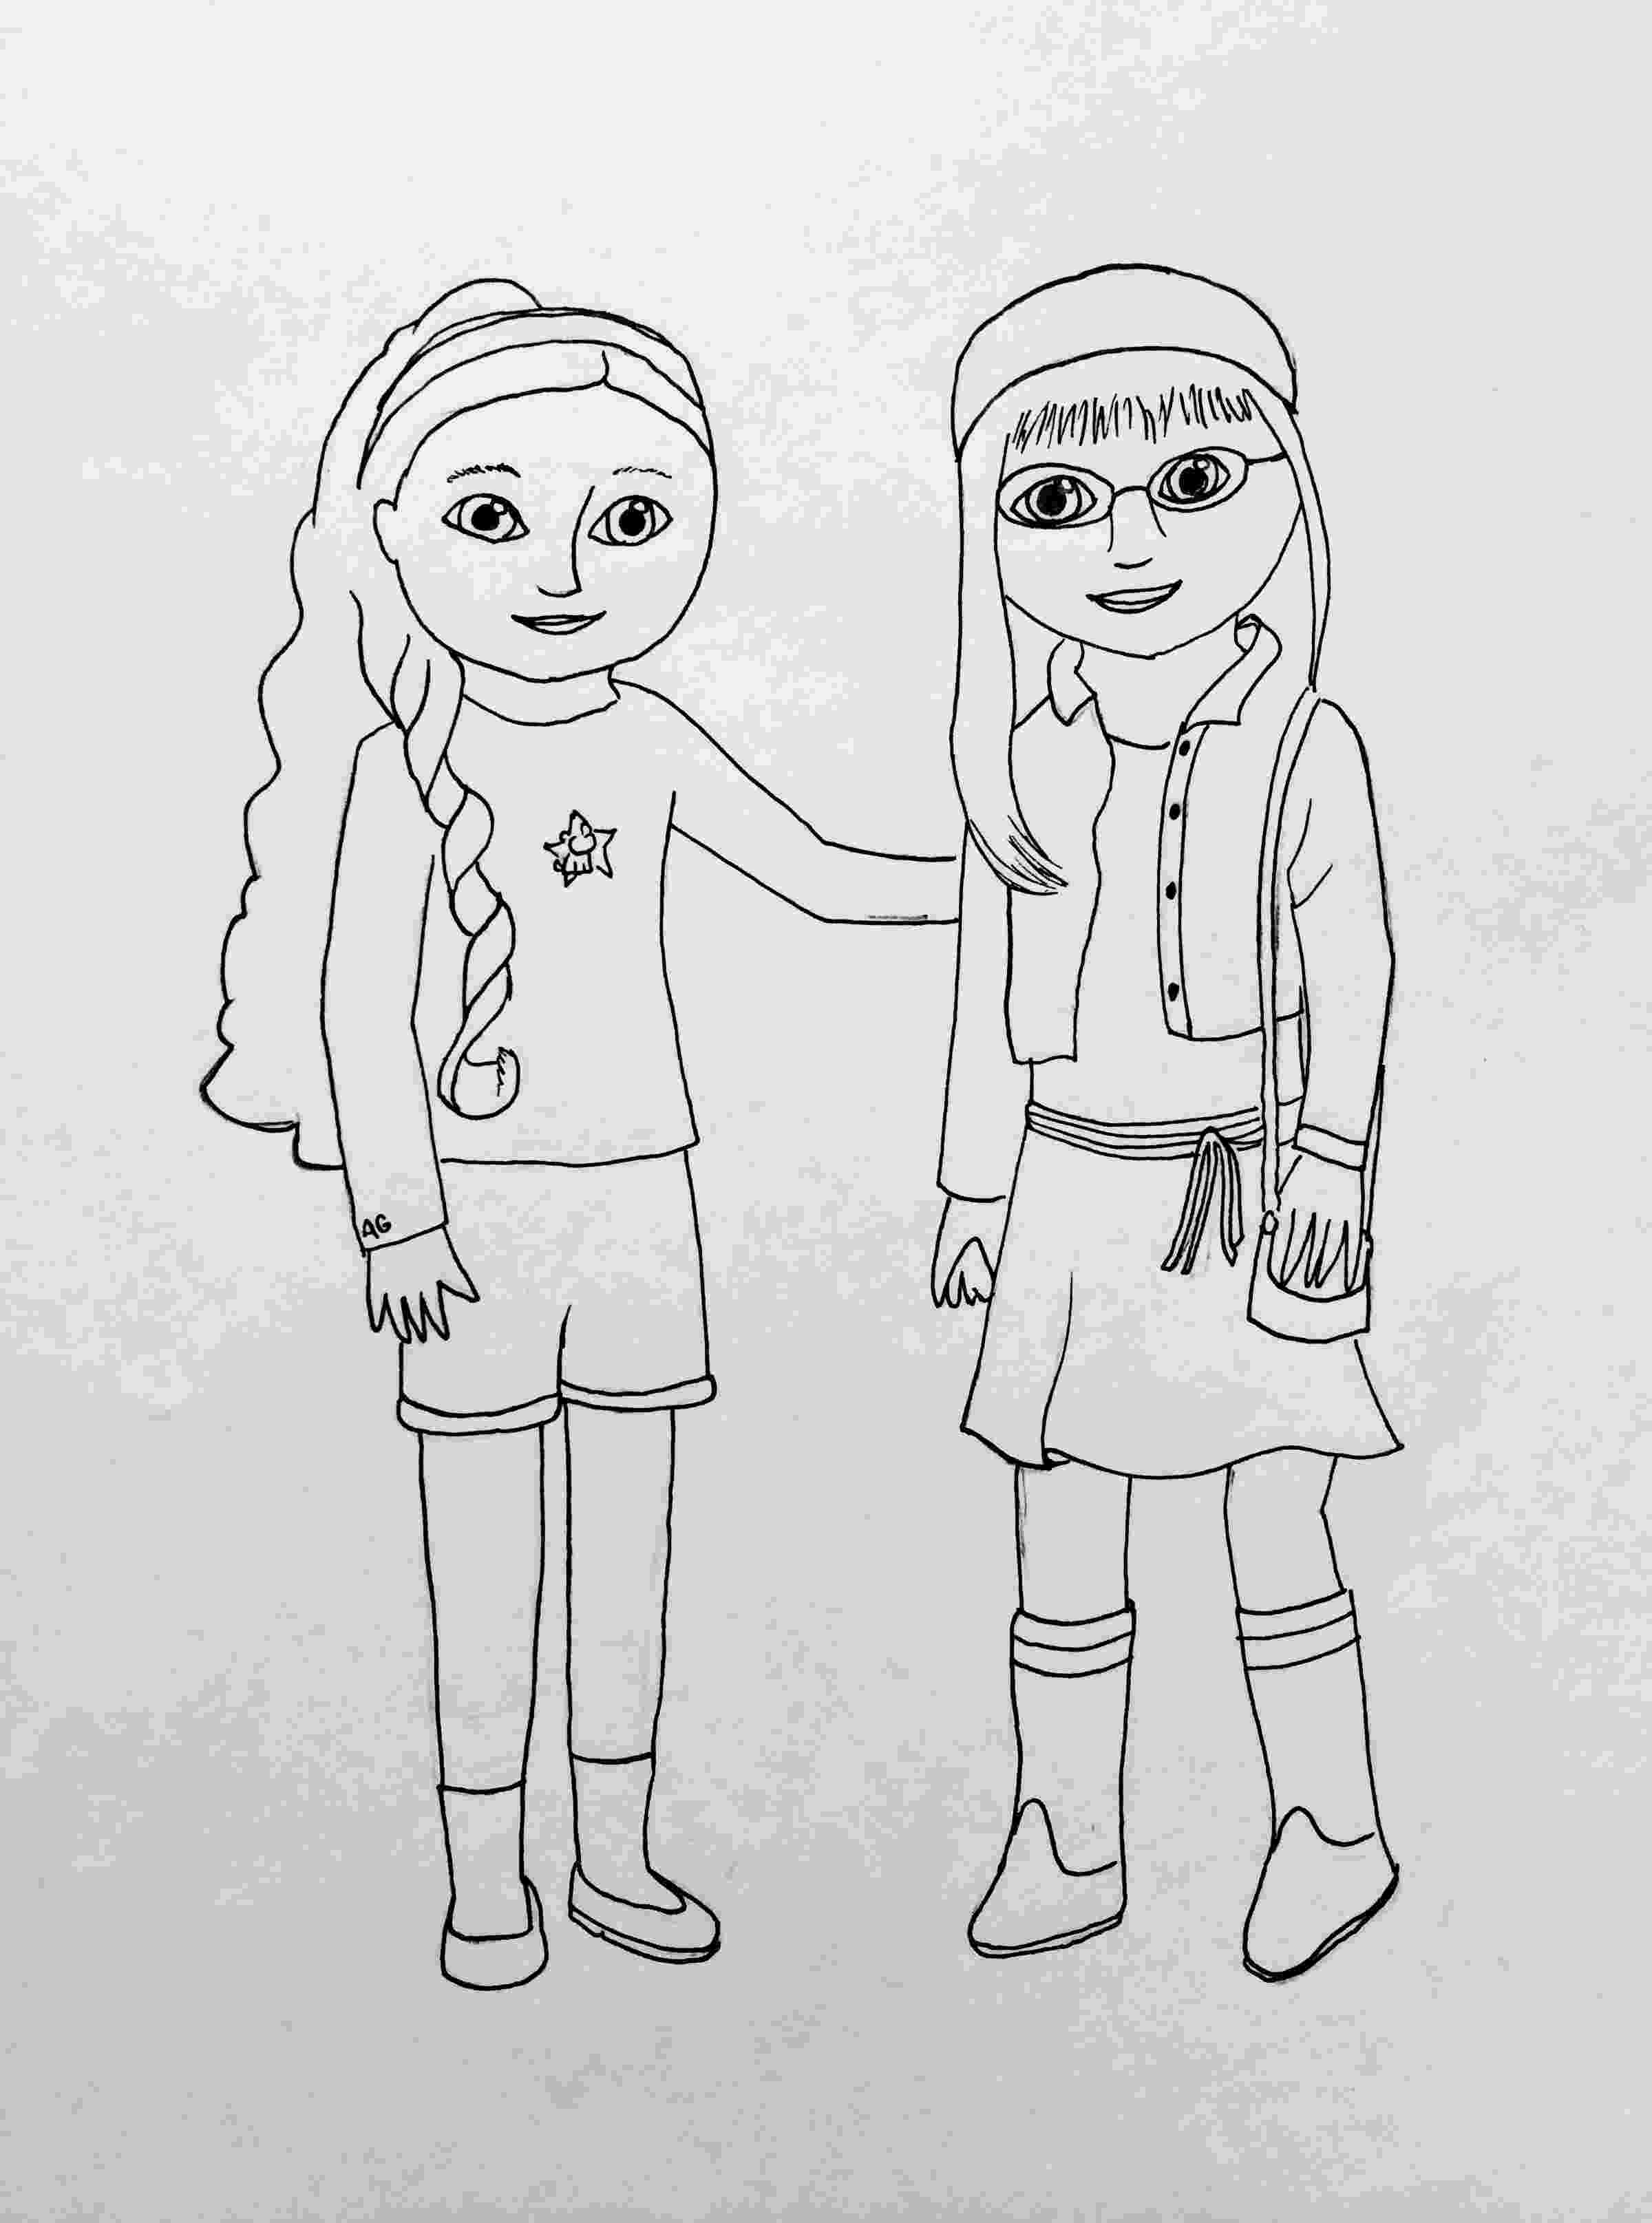 girl colering pages cute coloring pages best coloring pages for kids pages colering girl